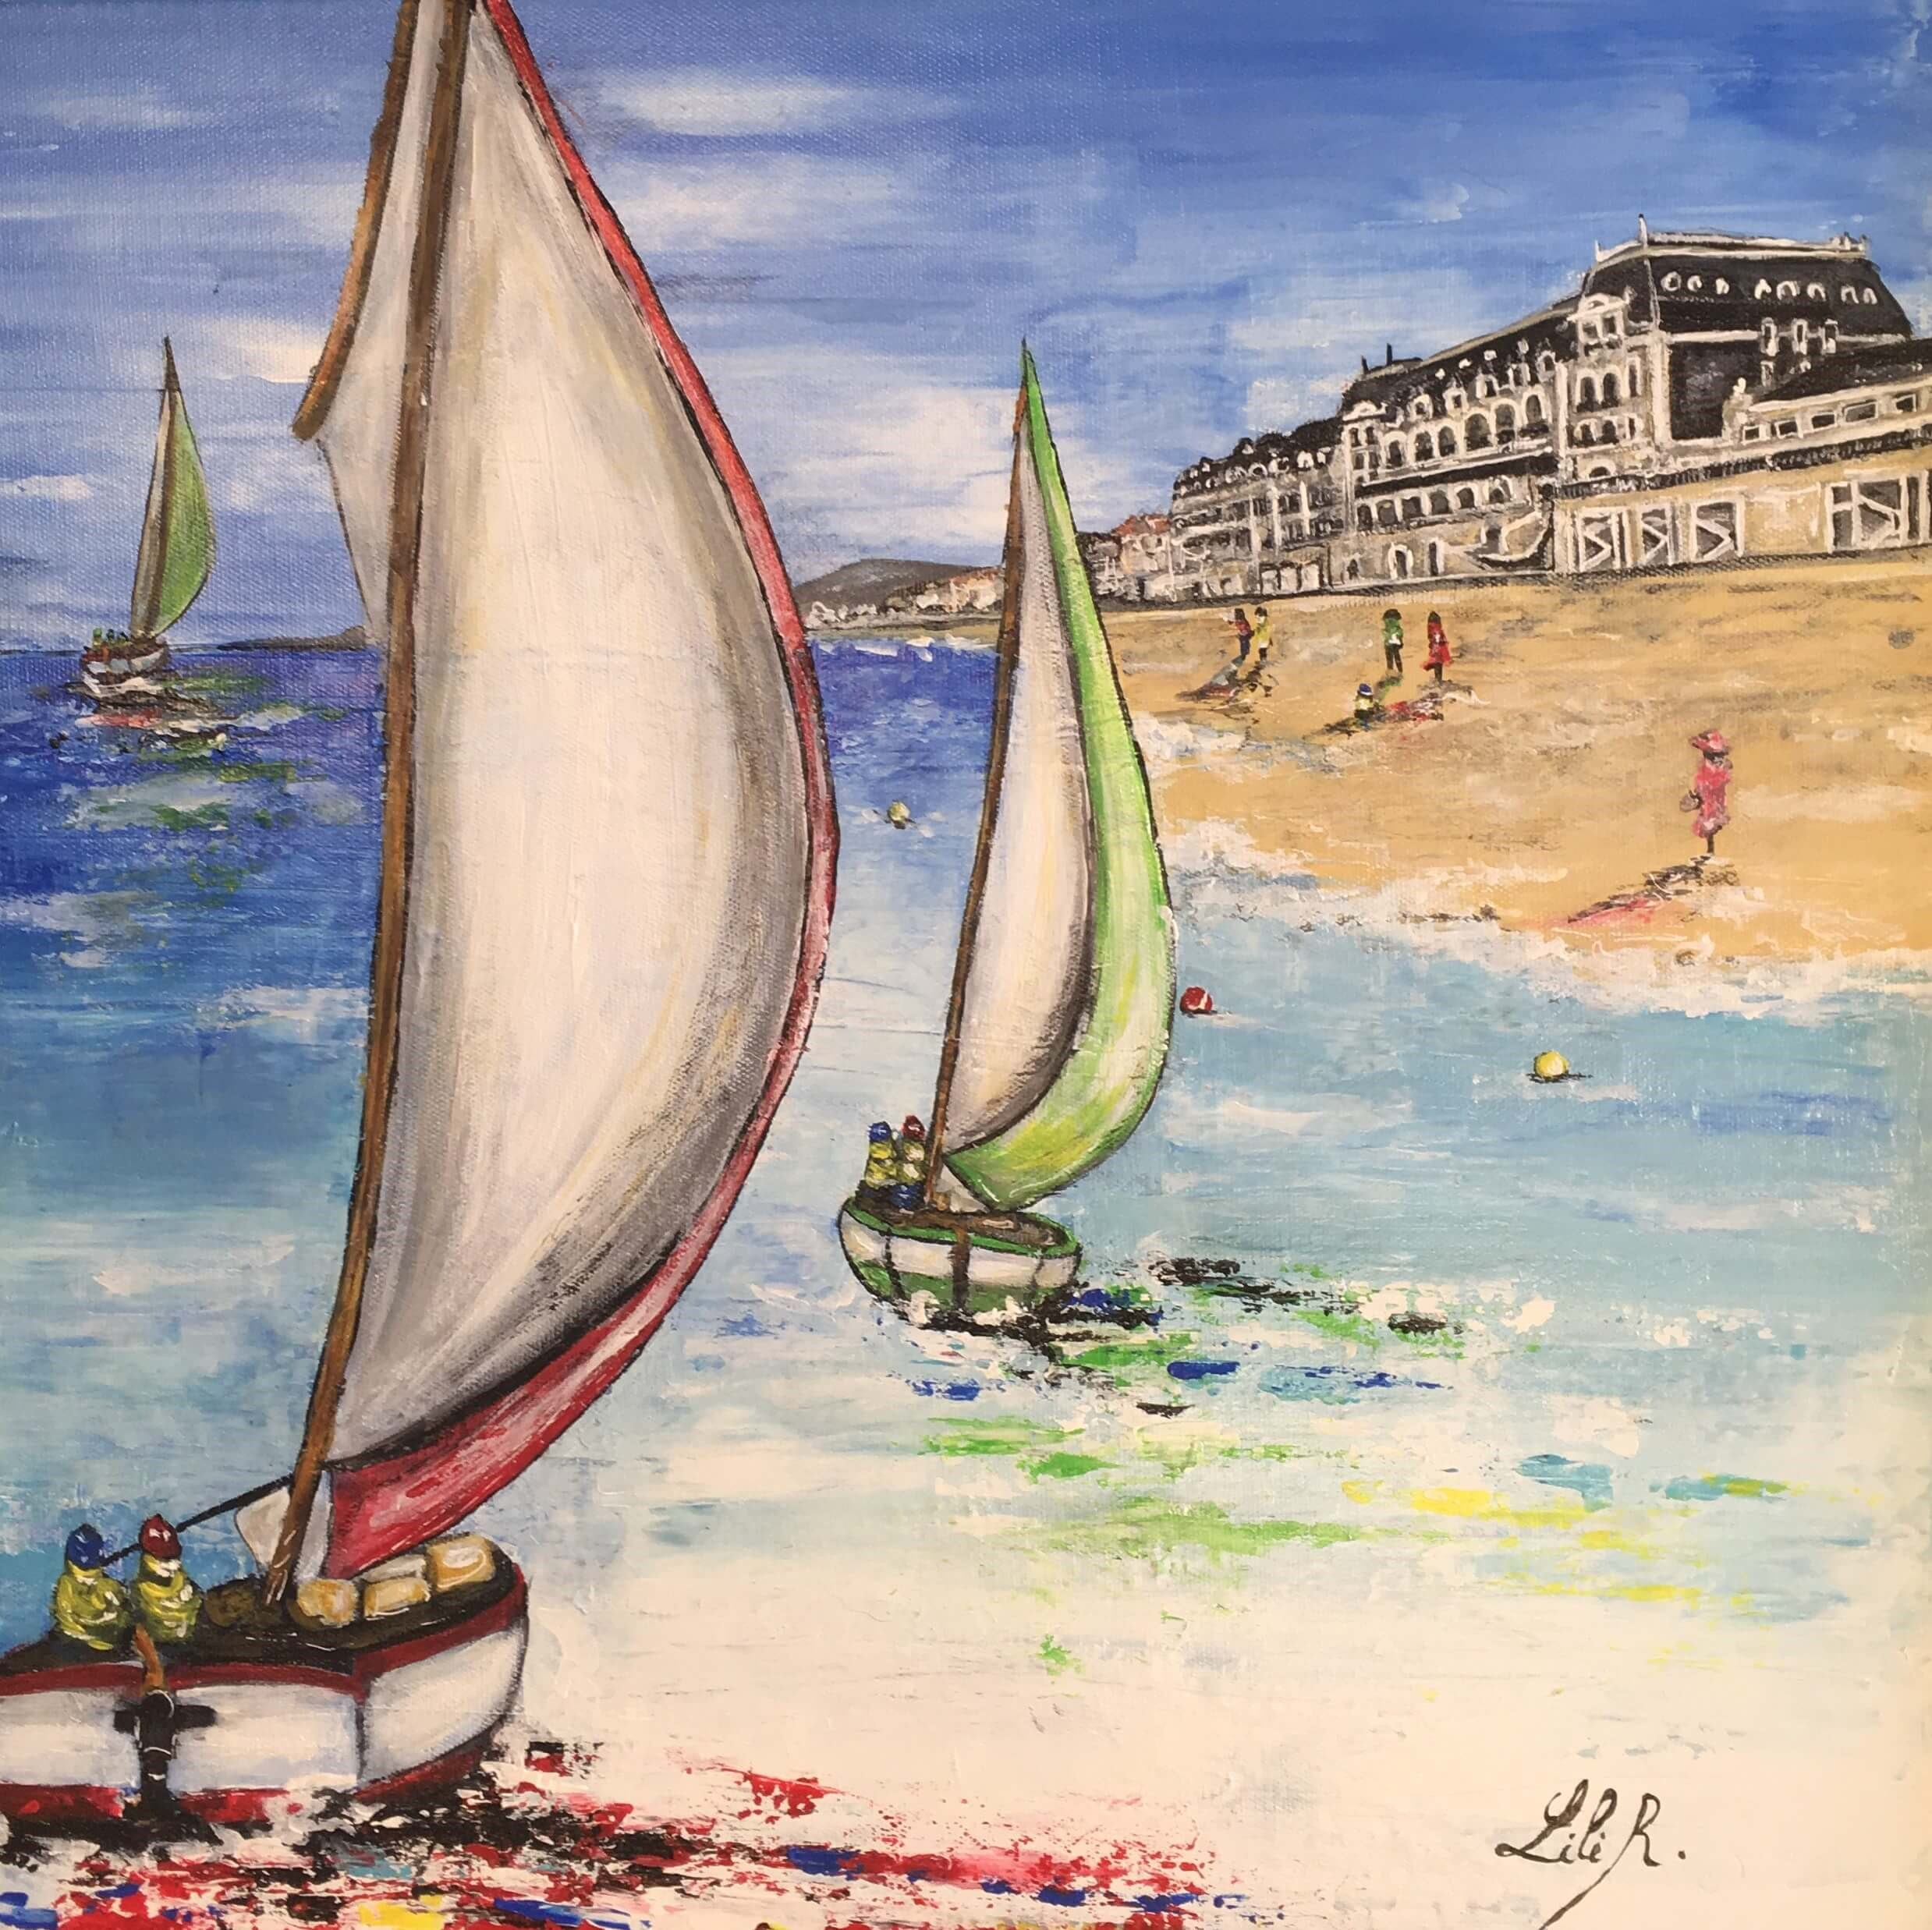 cabourg-grand-hotel-2-peinture-severine-richer.jpg